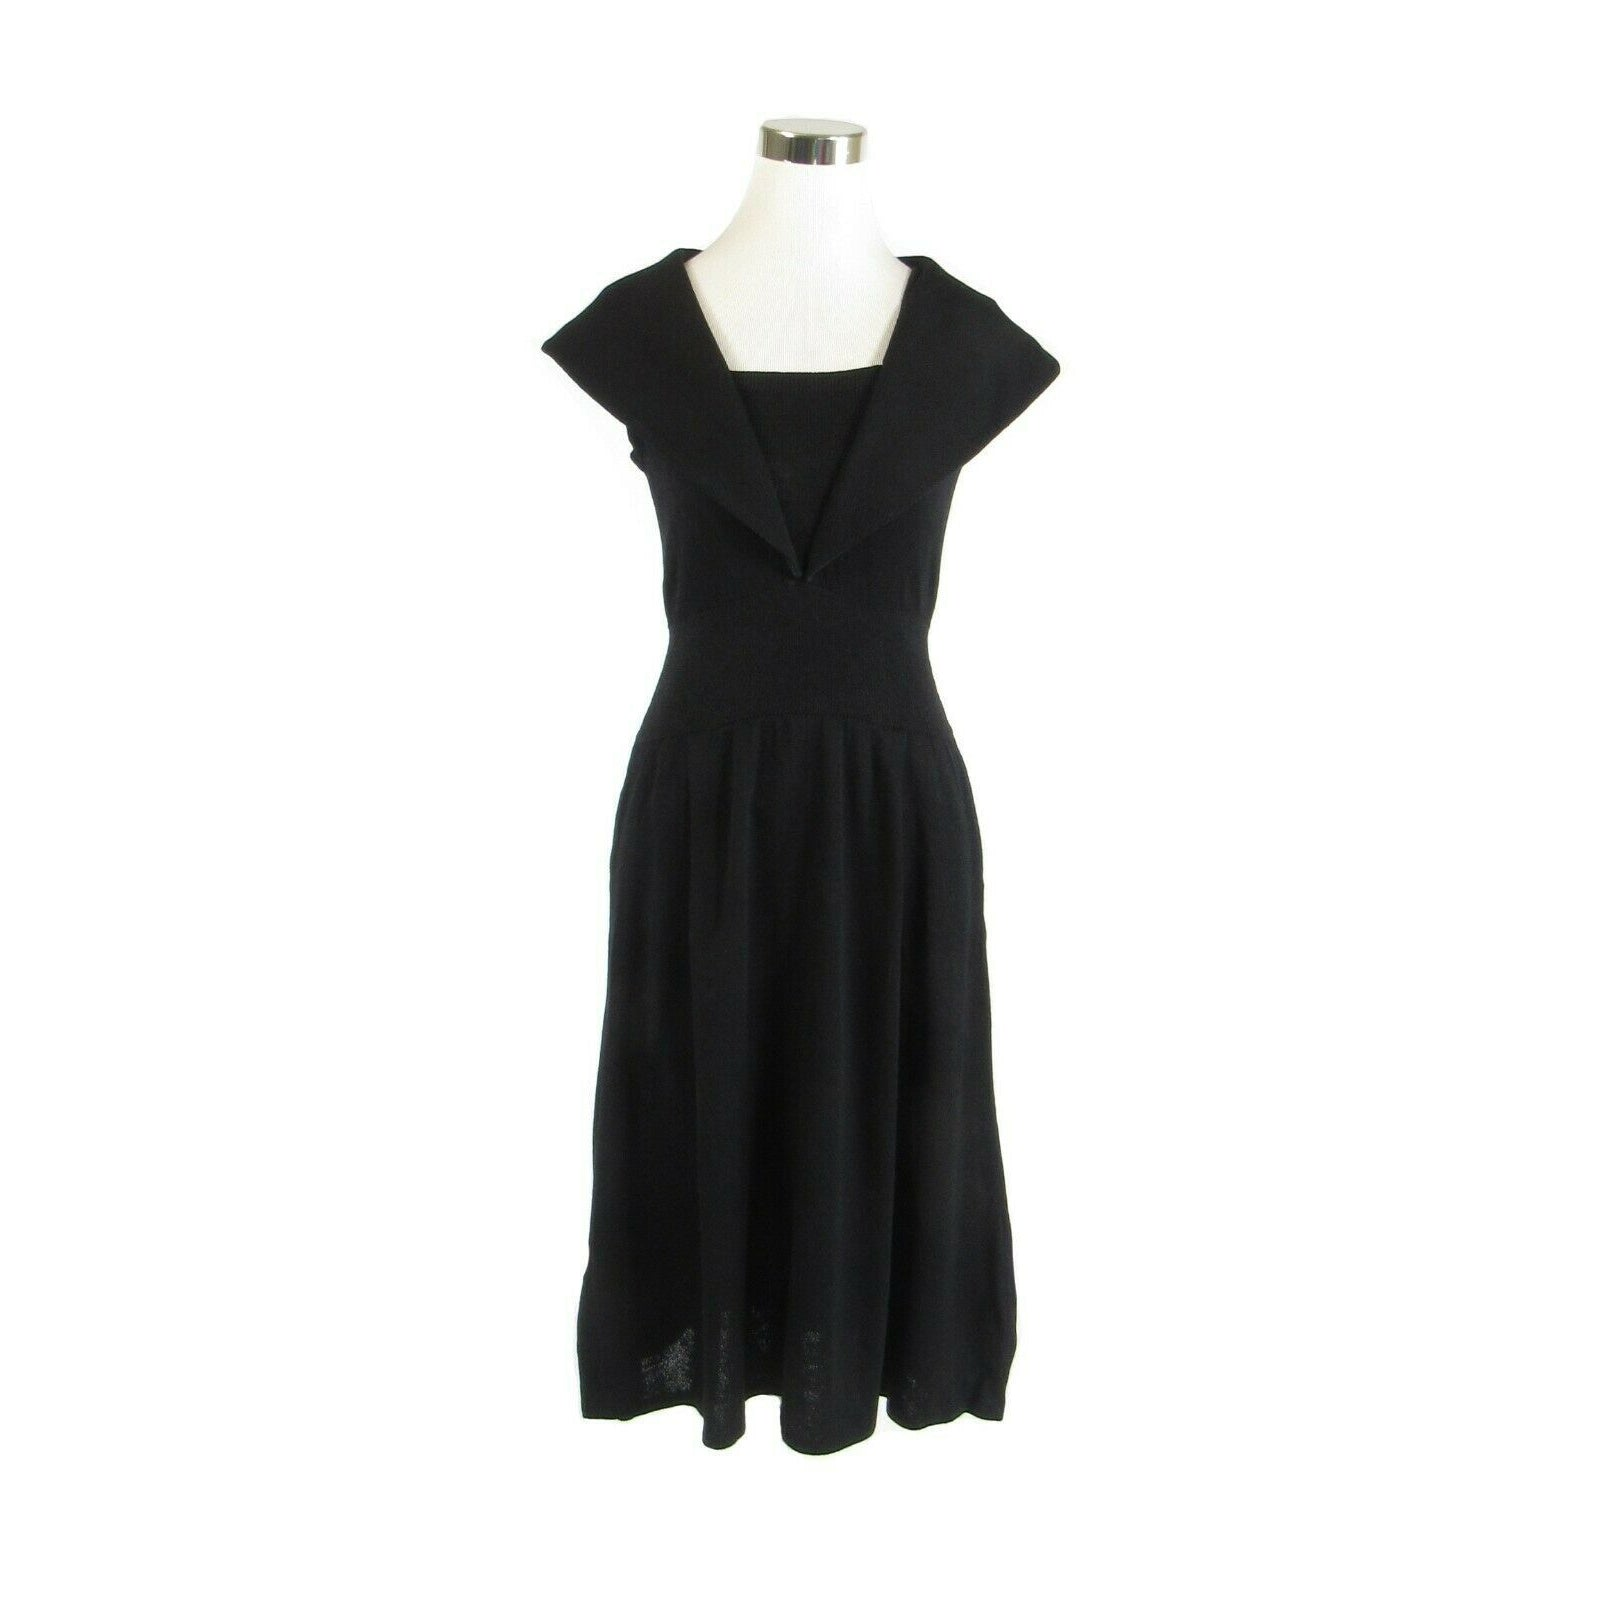 Black knit stretch sailor St. John by Marie Gray vintage dress 8-Newish